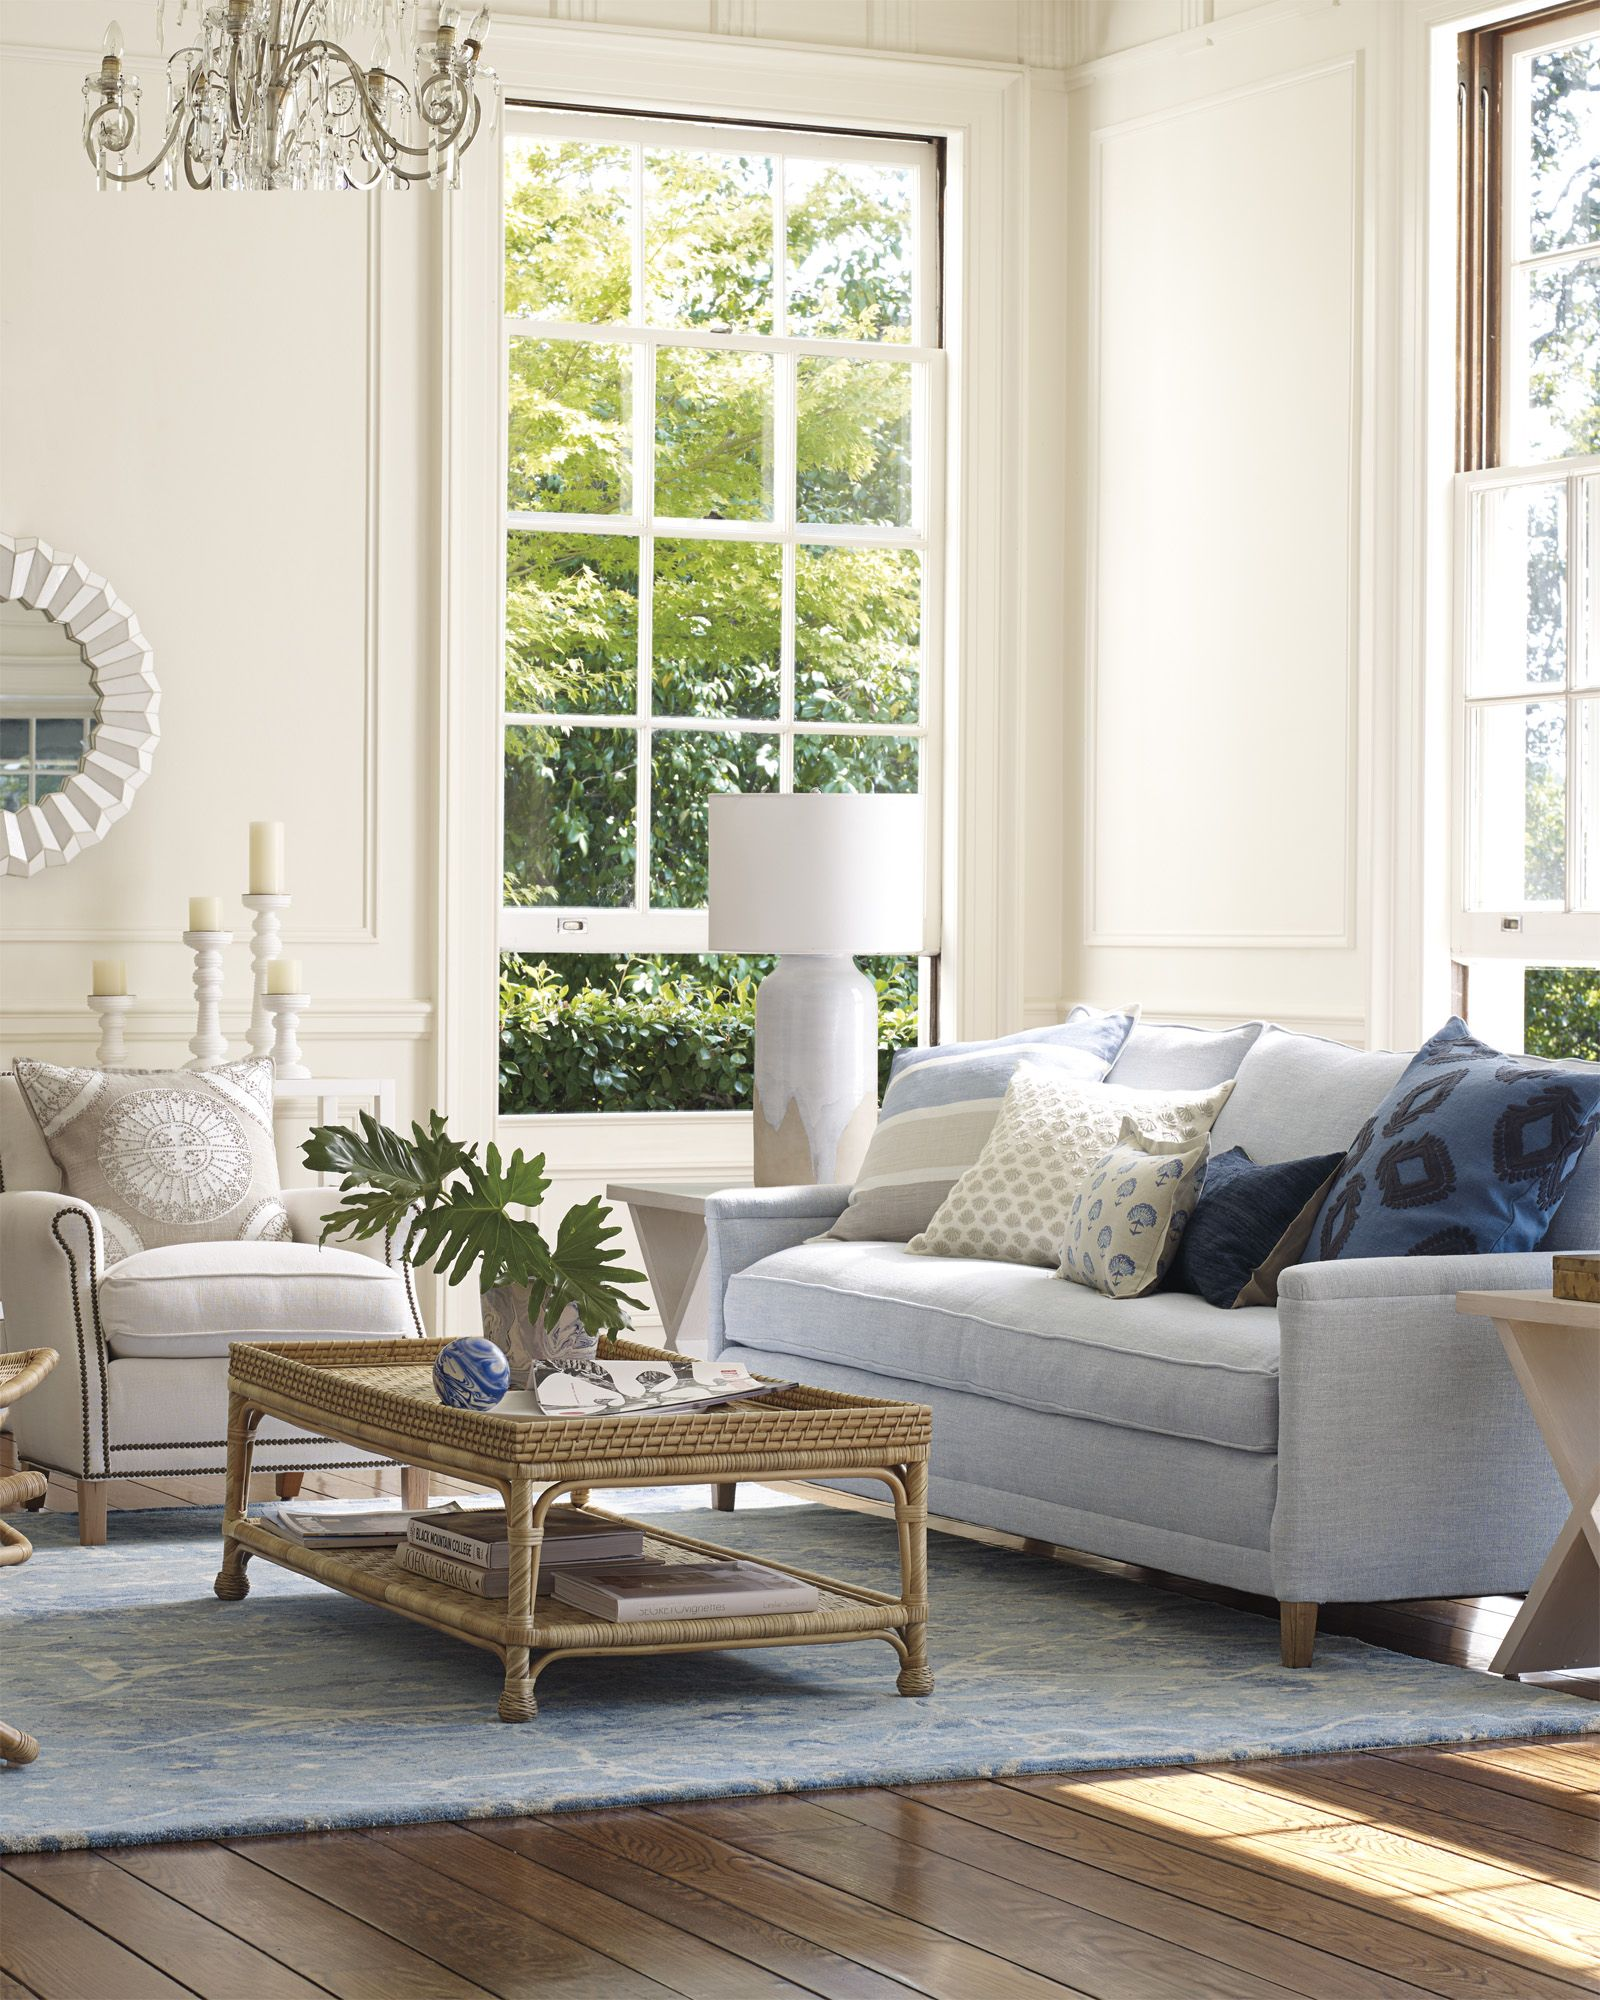 living room, wooden floor, blue rug, light blue sofa, white chair, wooden tray coffee table, side table, white wall, white table lamp